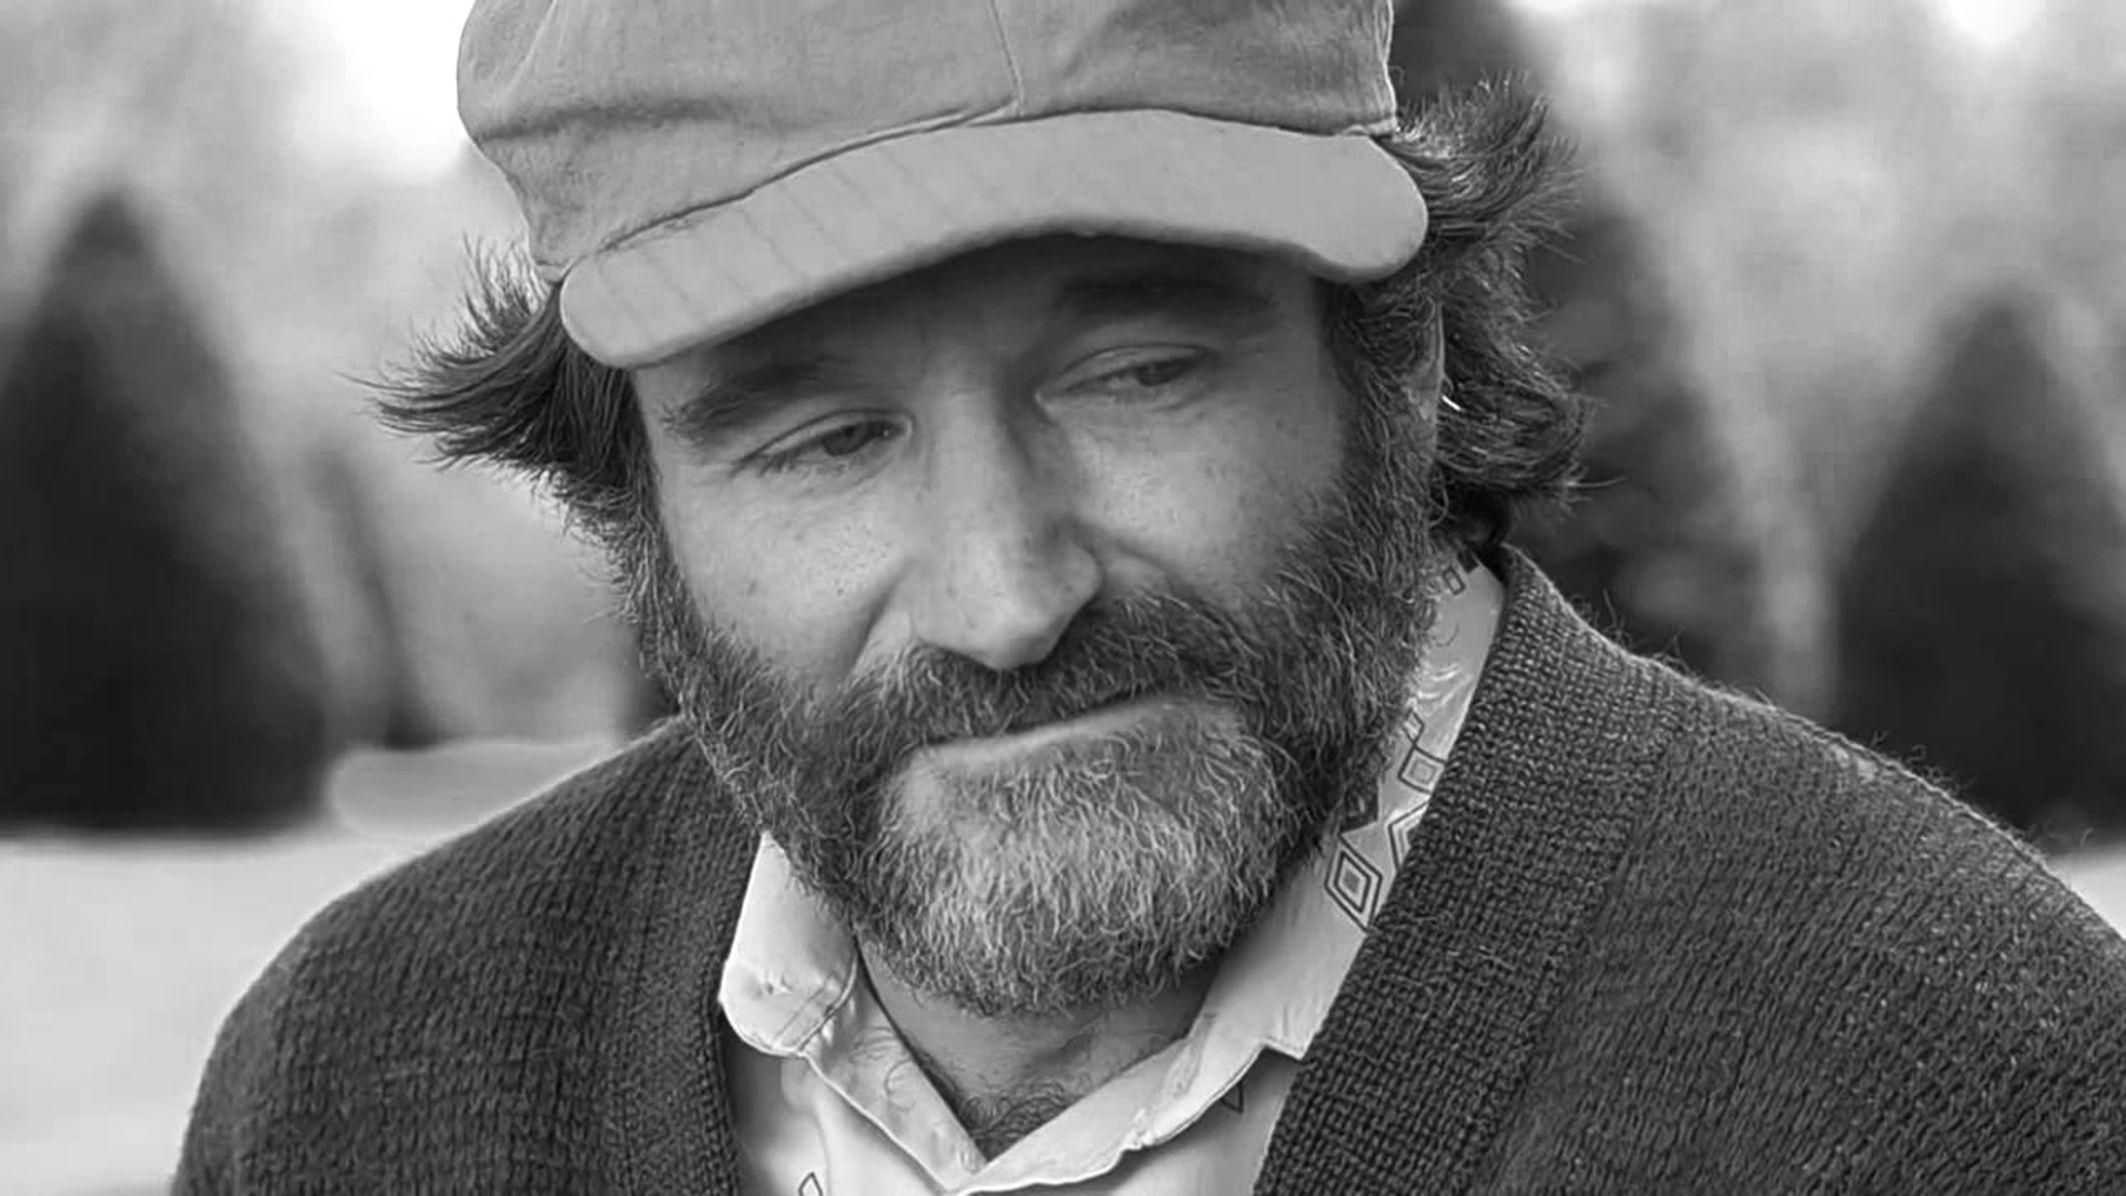 Sad actor Robin Williams wallpapers and images - wallpapers ...